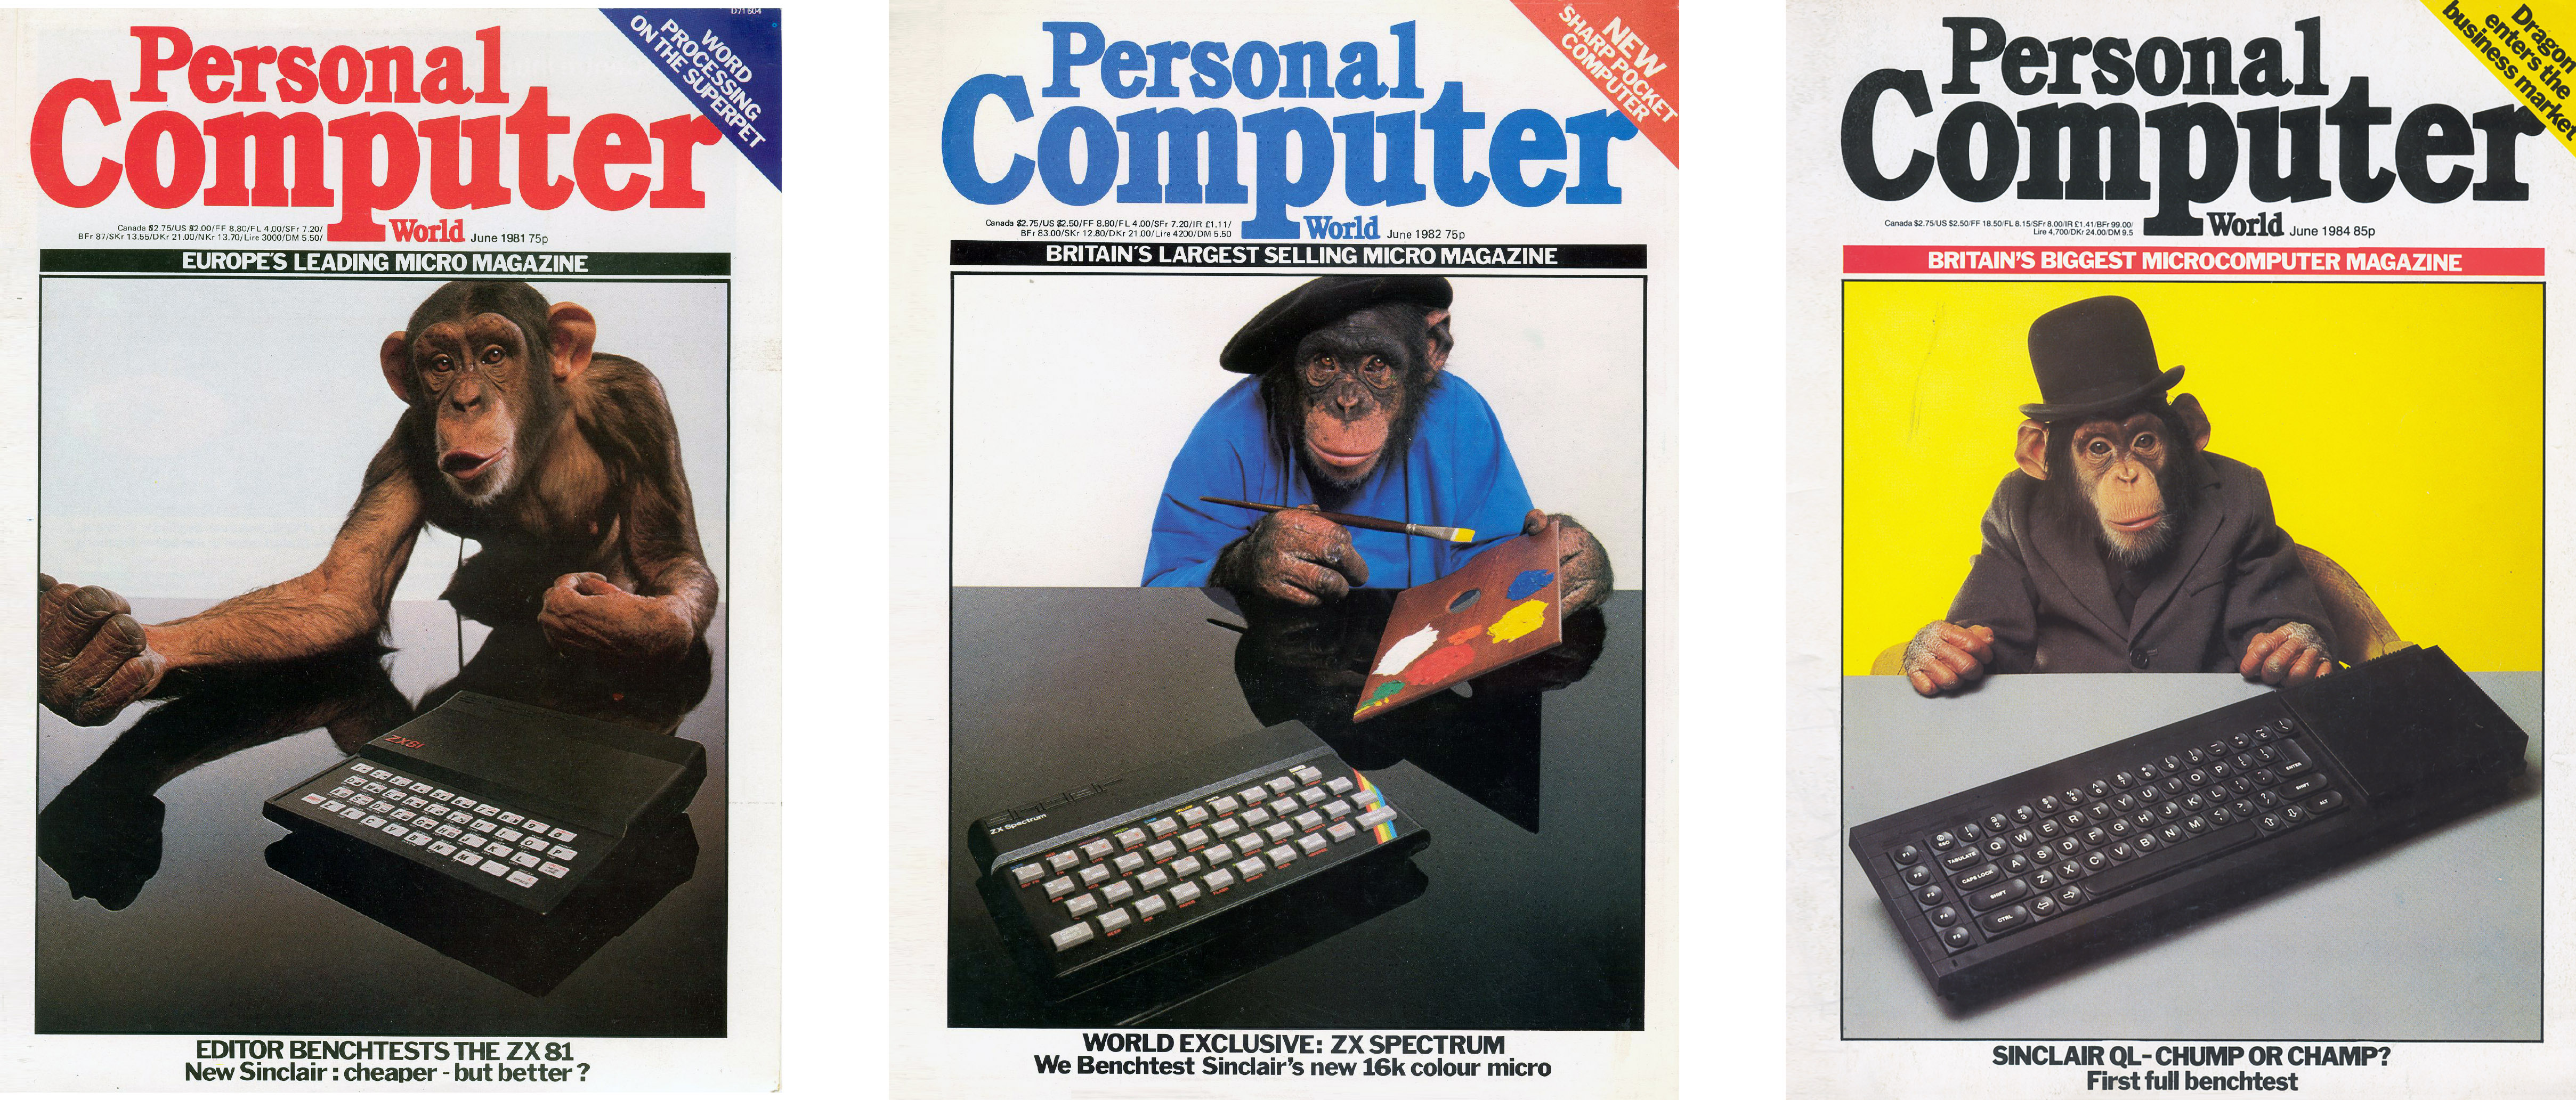 ZX81, ZX Spectrum, and QL on the cover of a popular magazine. Don't ask me about the chimpanzee; Britain is weird.